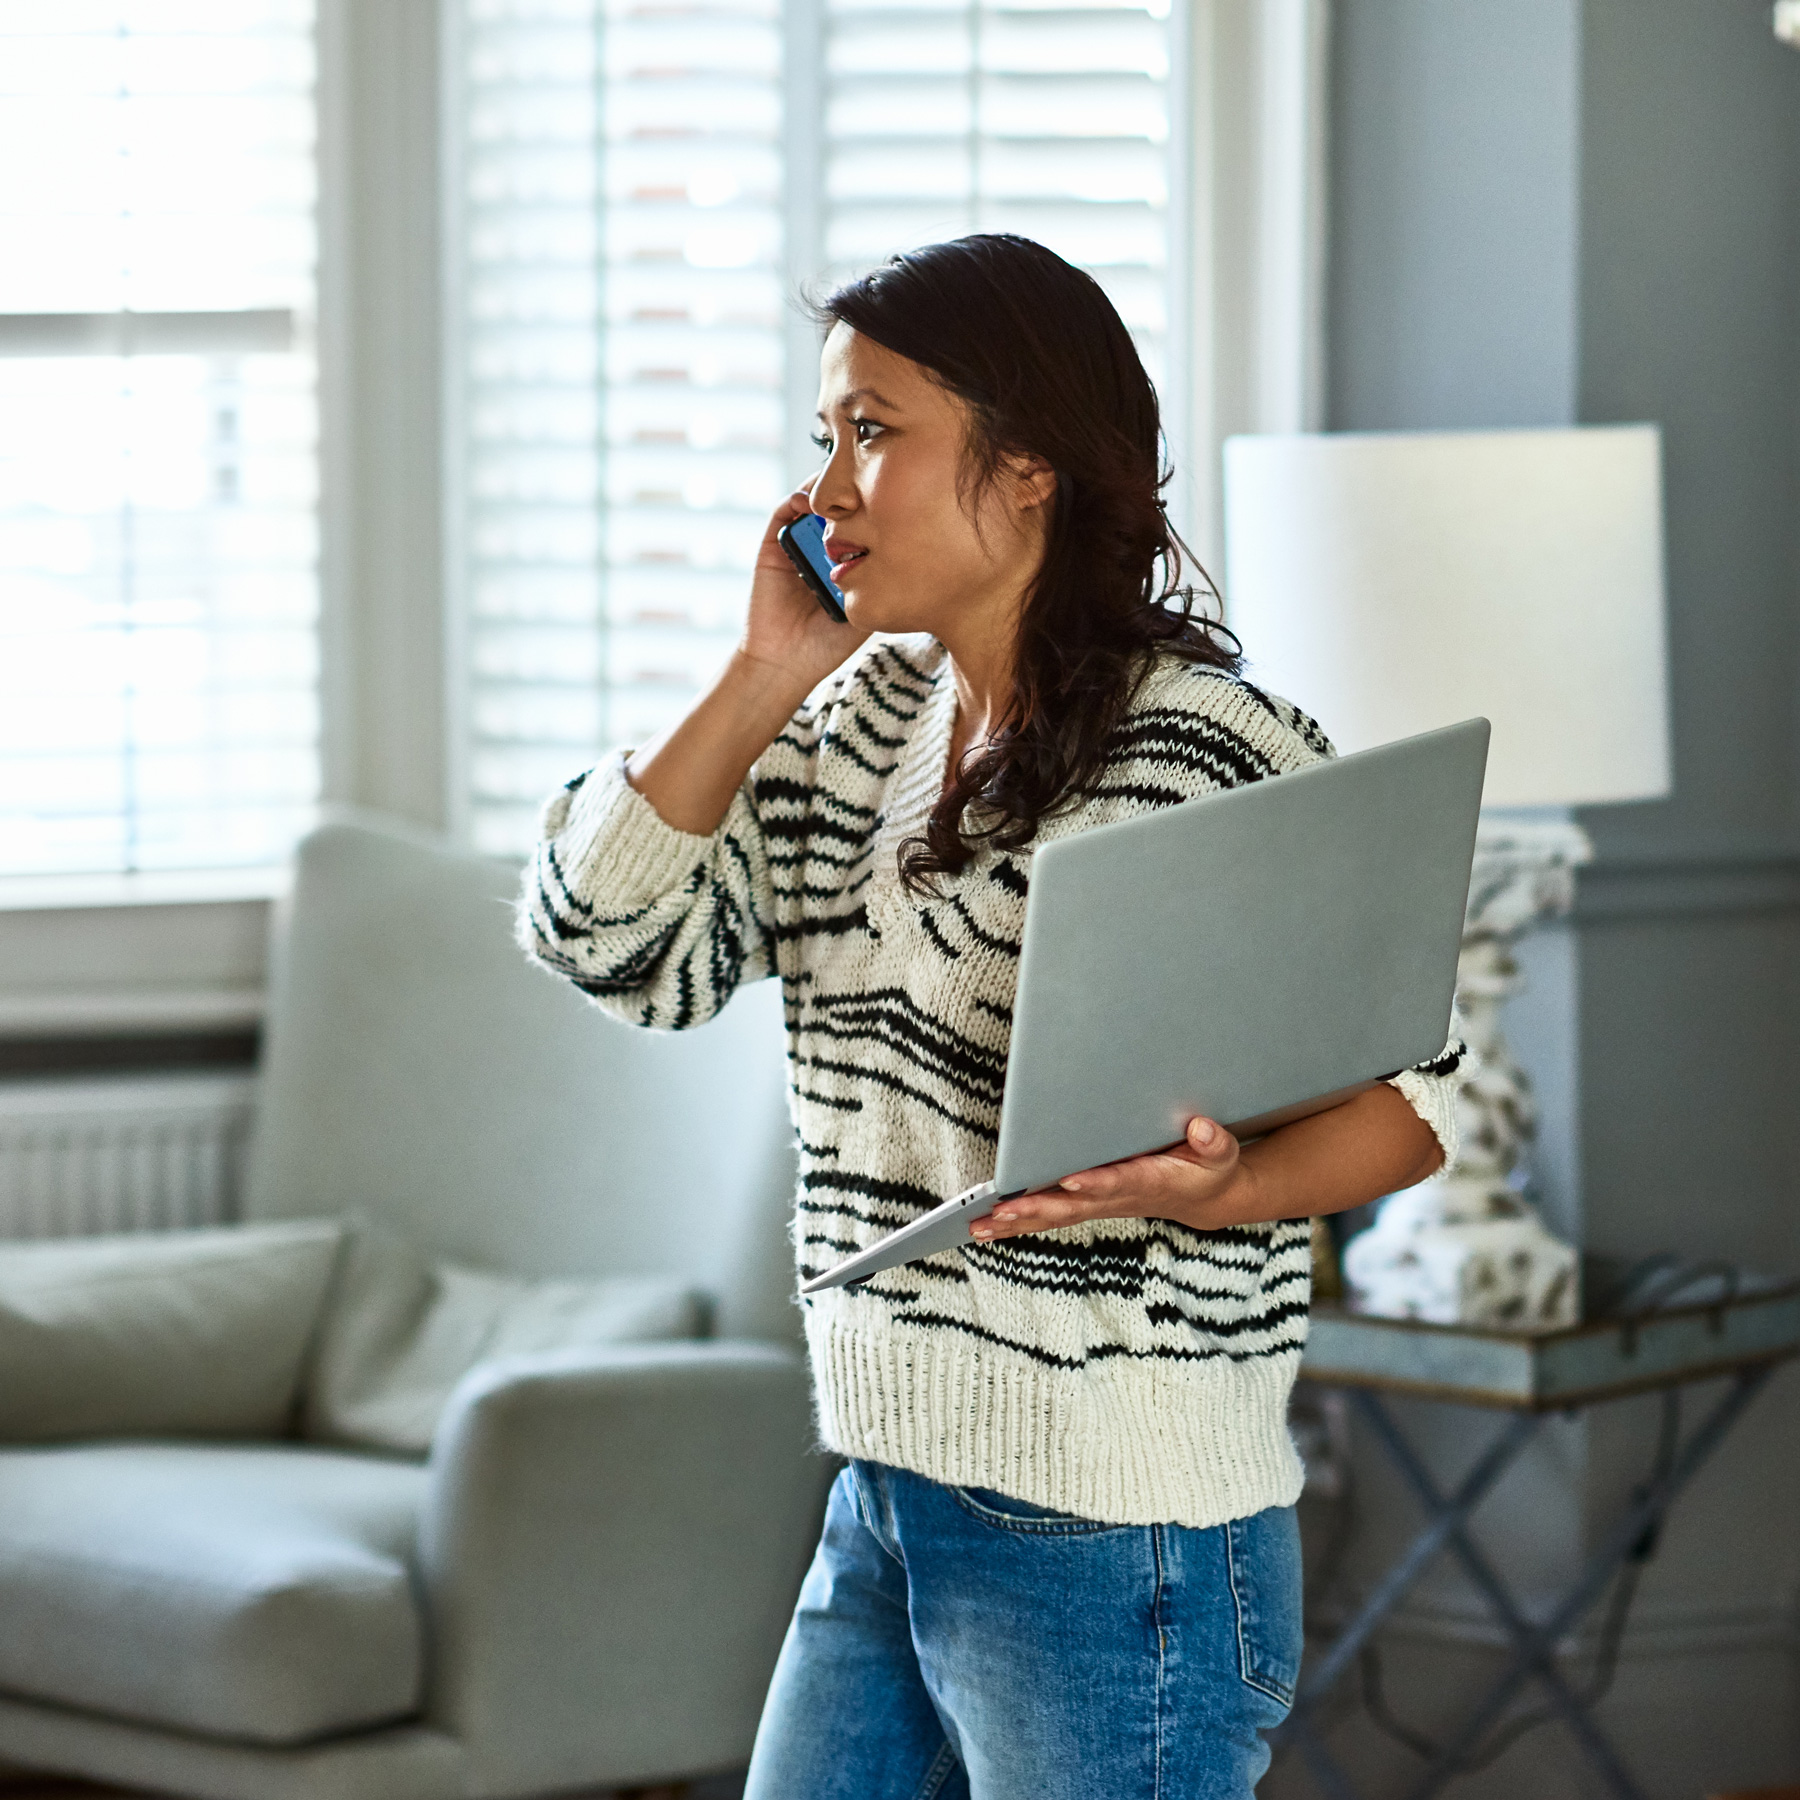 How to break bad habits (whining/complaining), woman looking distressed talking on the phone